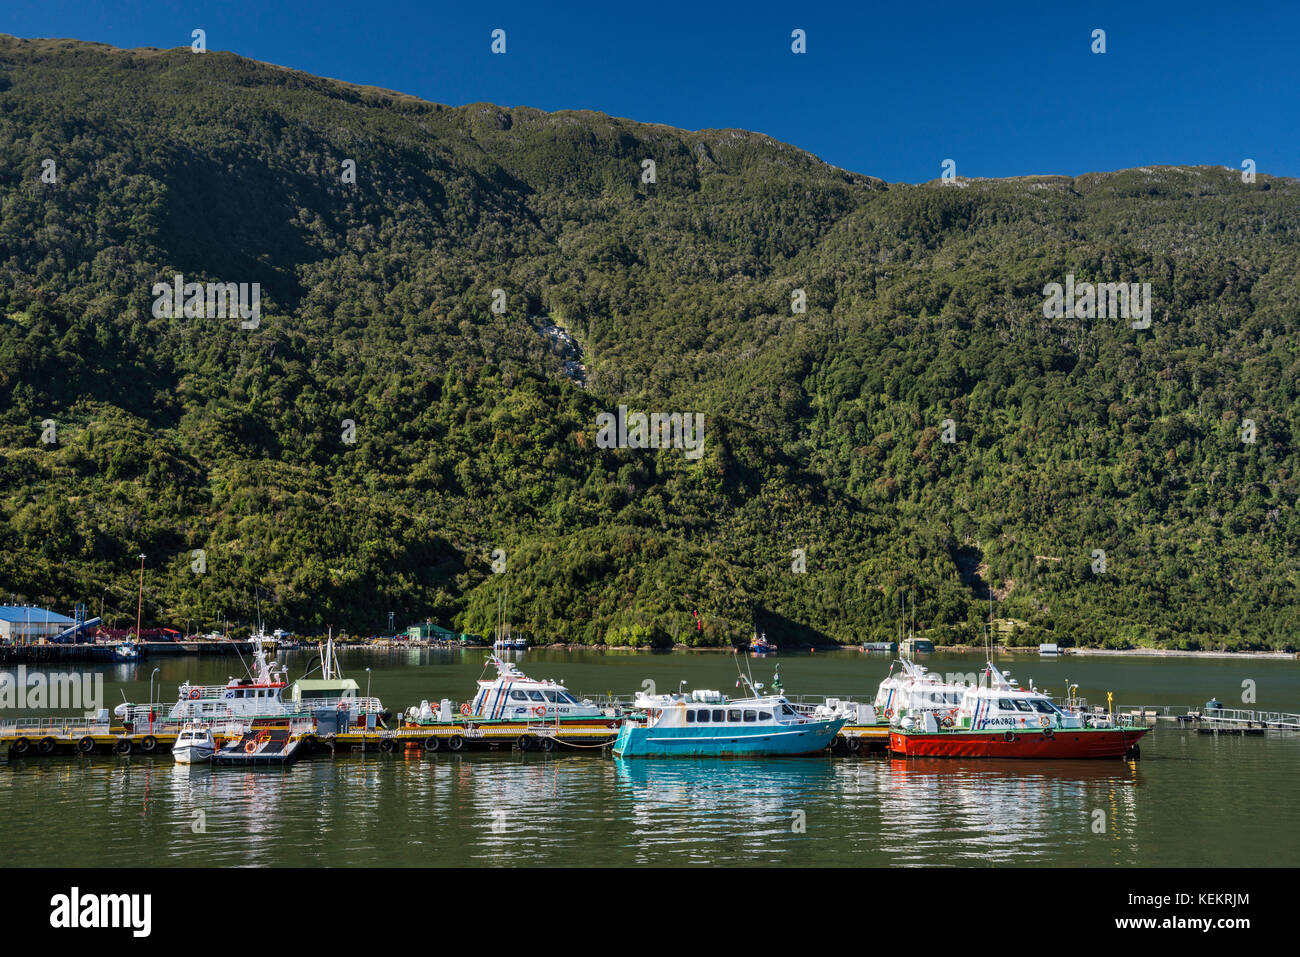 Boats moored in port of Puerto Chacabuco, Aisen Fjord, Valdivian temperate rainforest, Aysen Region, Patagonia, - Stock Image